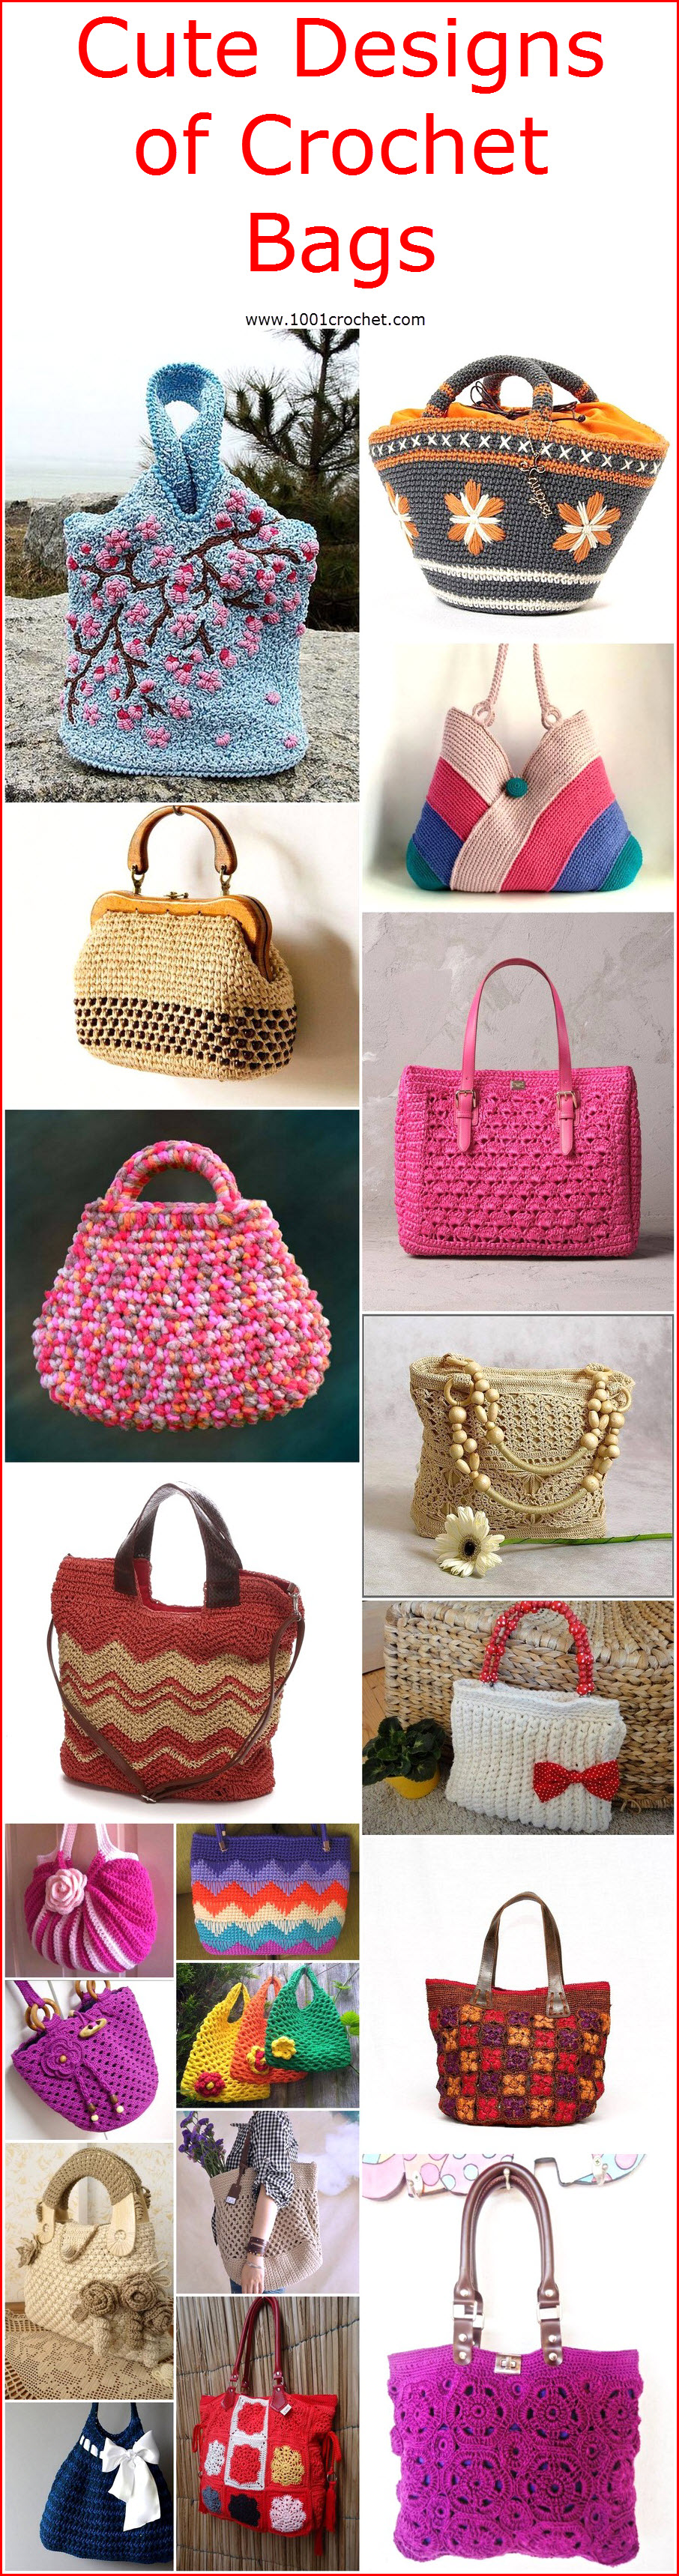 Cute Designs of Crochet Bags – 1001 Crochet 6c9add99a9f88